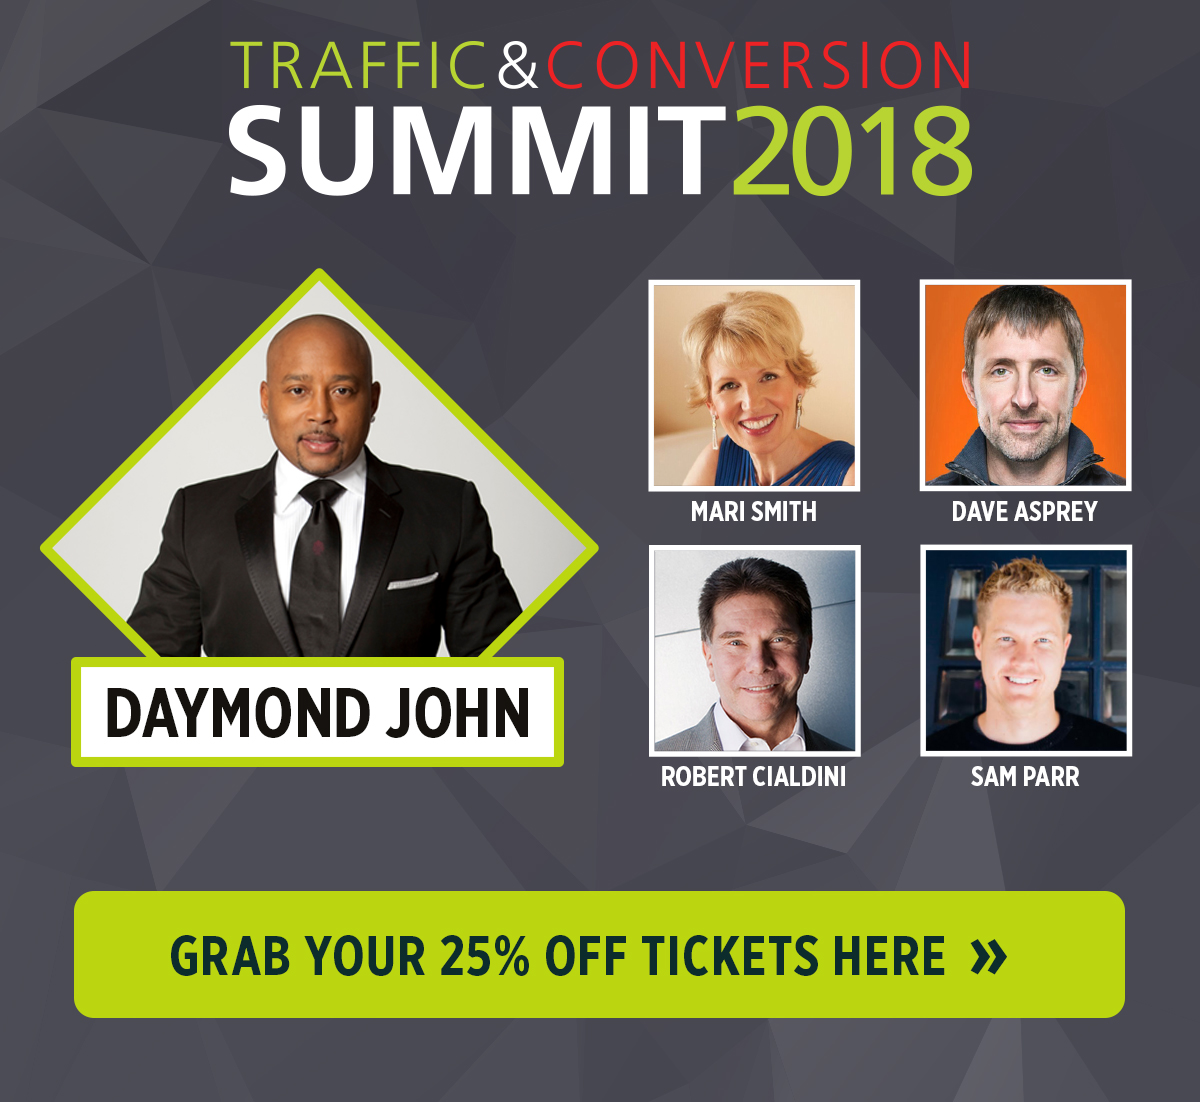 Reserve your seat today for Traffic & Conversion Summit 2018 and save 25%!